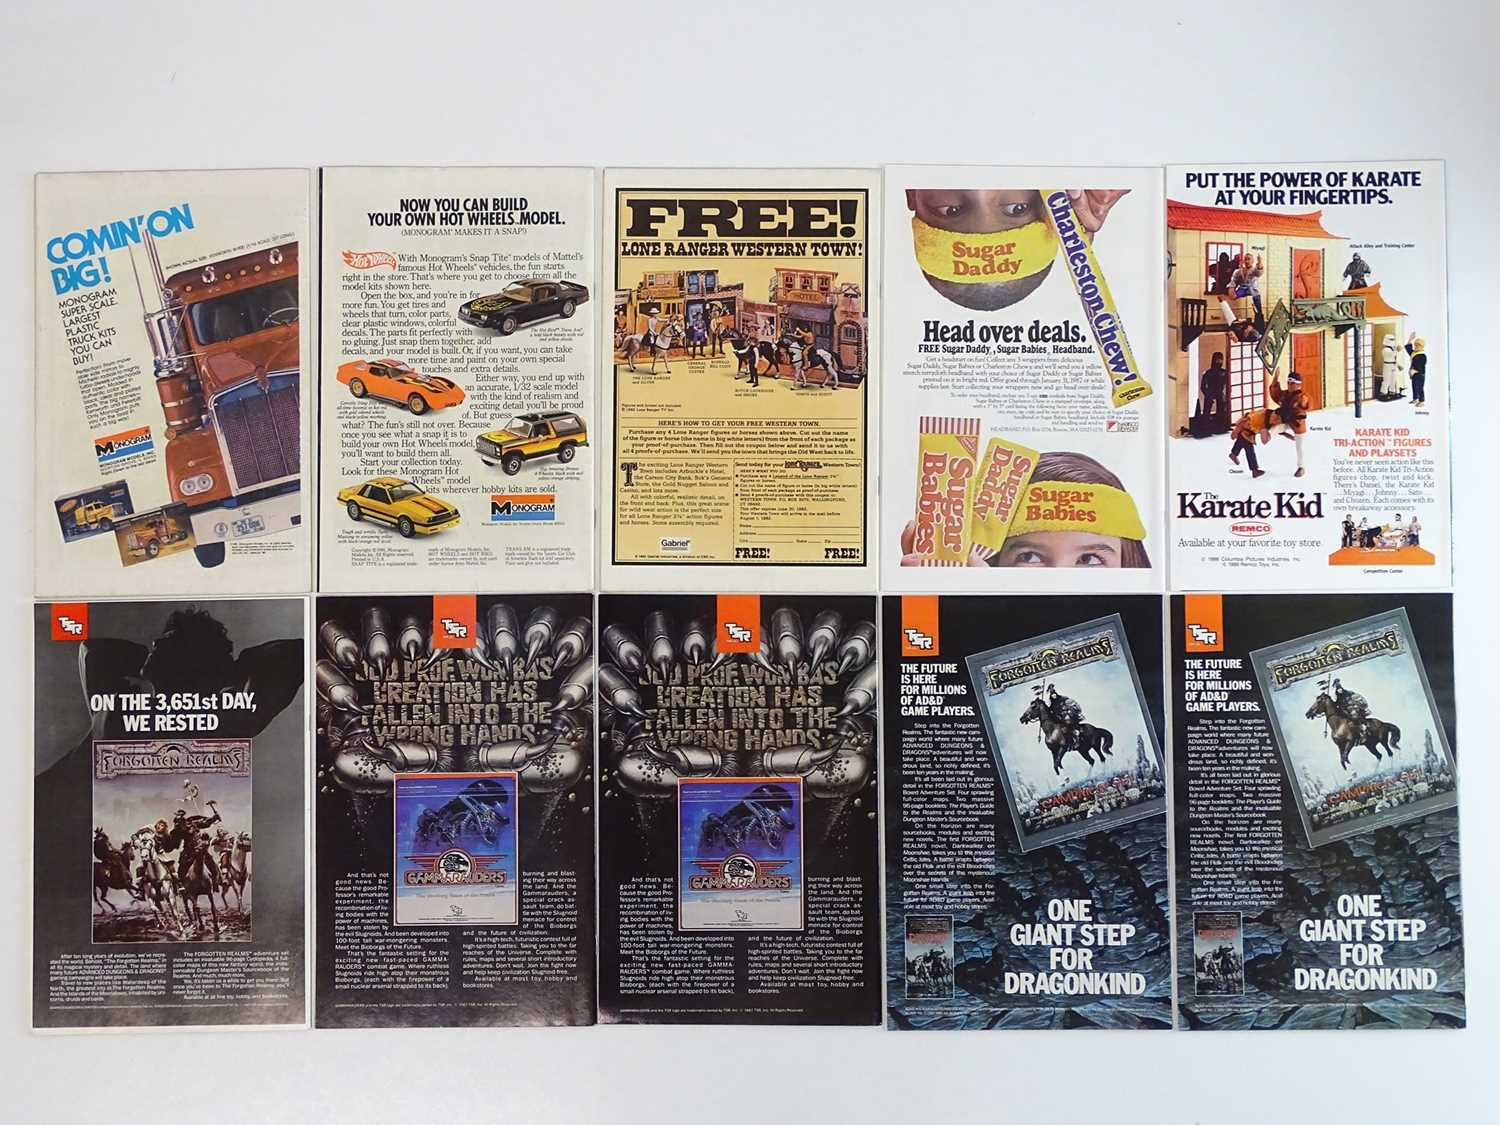 BATMAN #345, 346, 347, 402, 403, 412, 413, 414, 415, 416 - (10 in Lot) - (1982/88 - DC) - Includes - Image 2 of 2